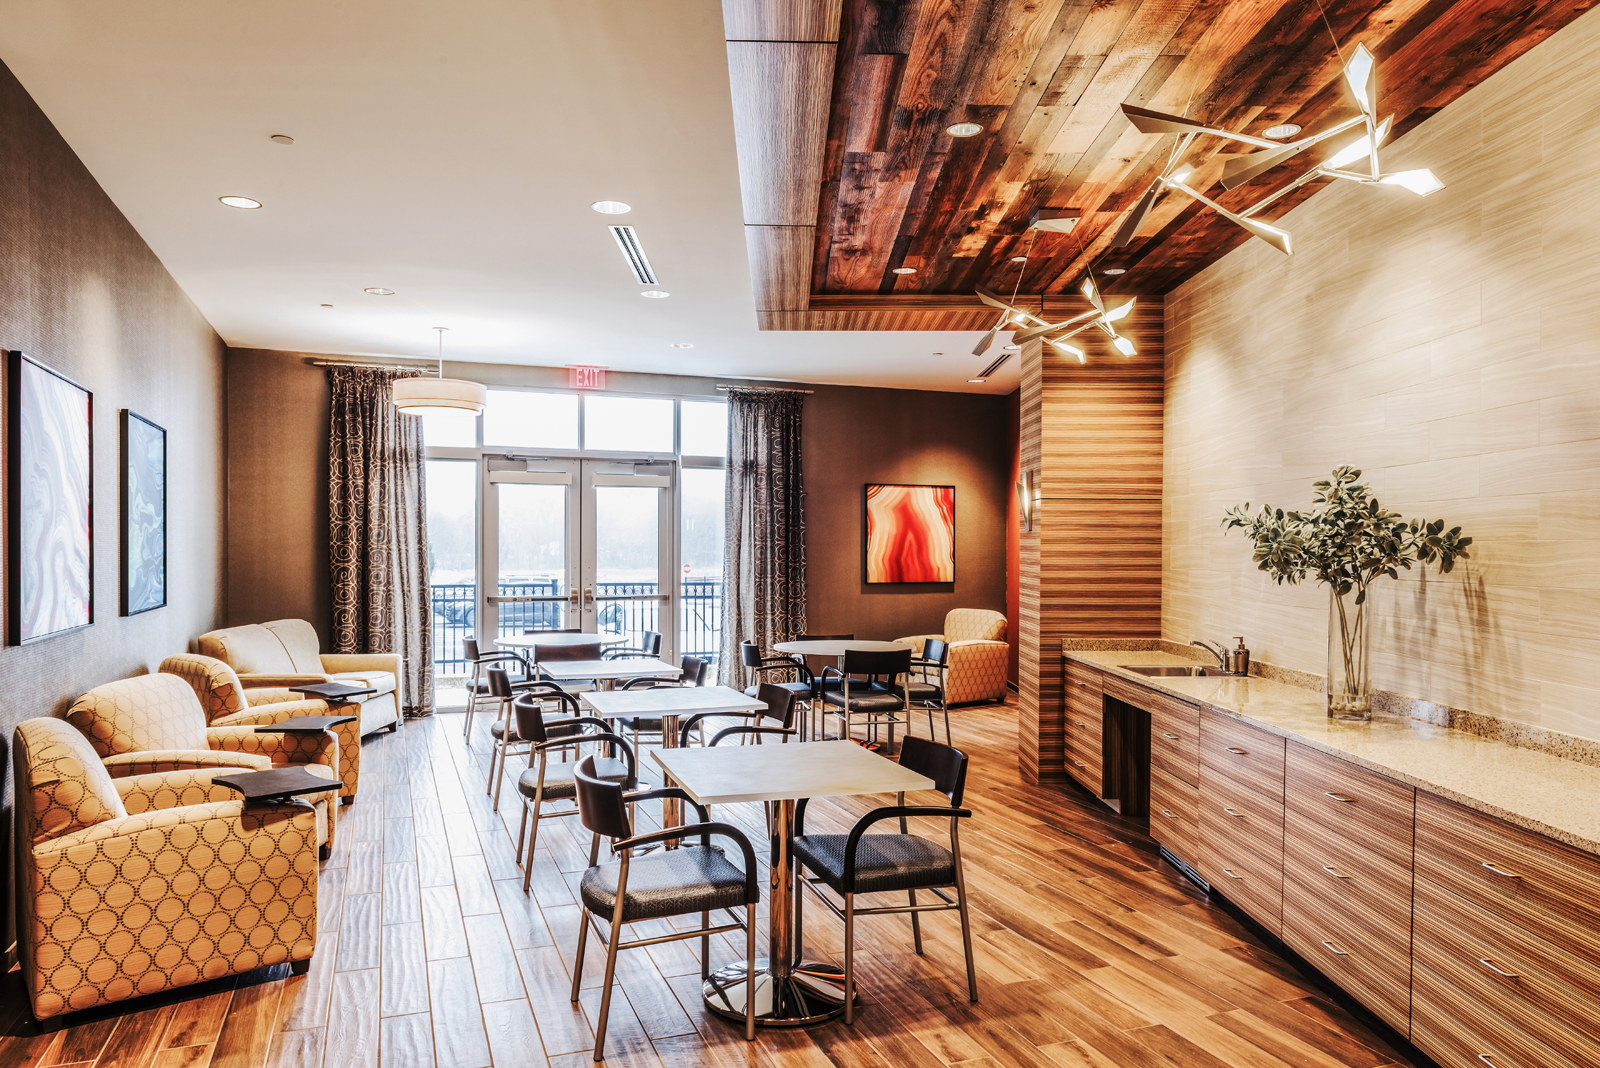 Modern rustic cafe designed by WDC interior designers in assisted living  community